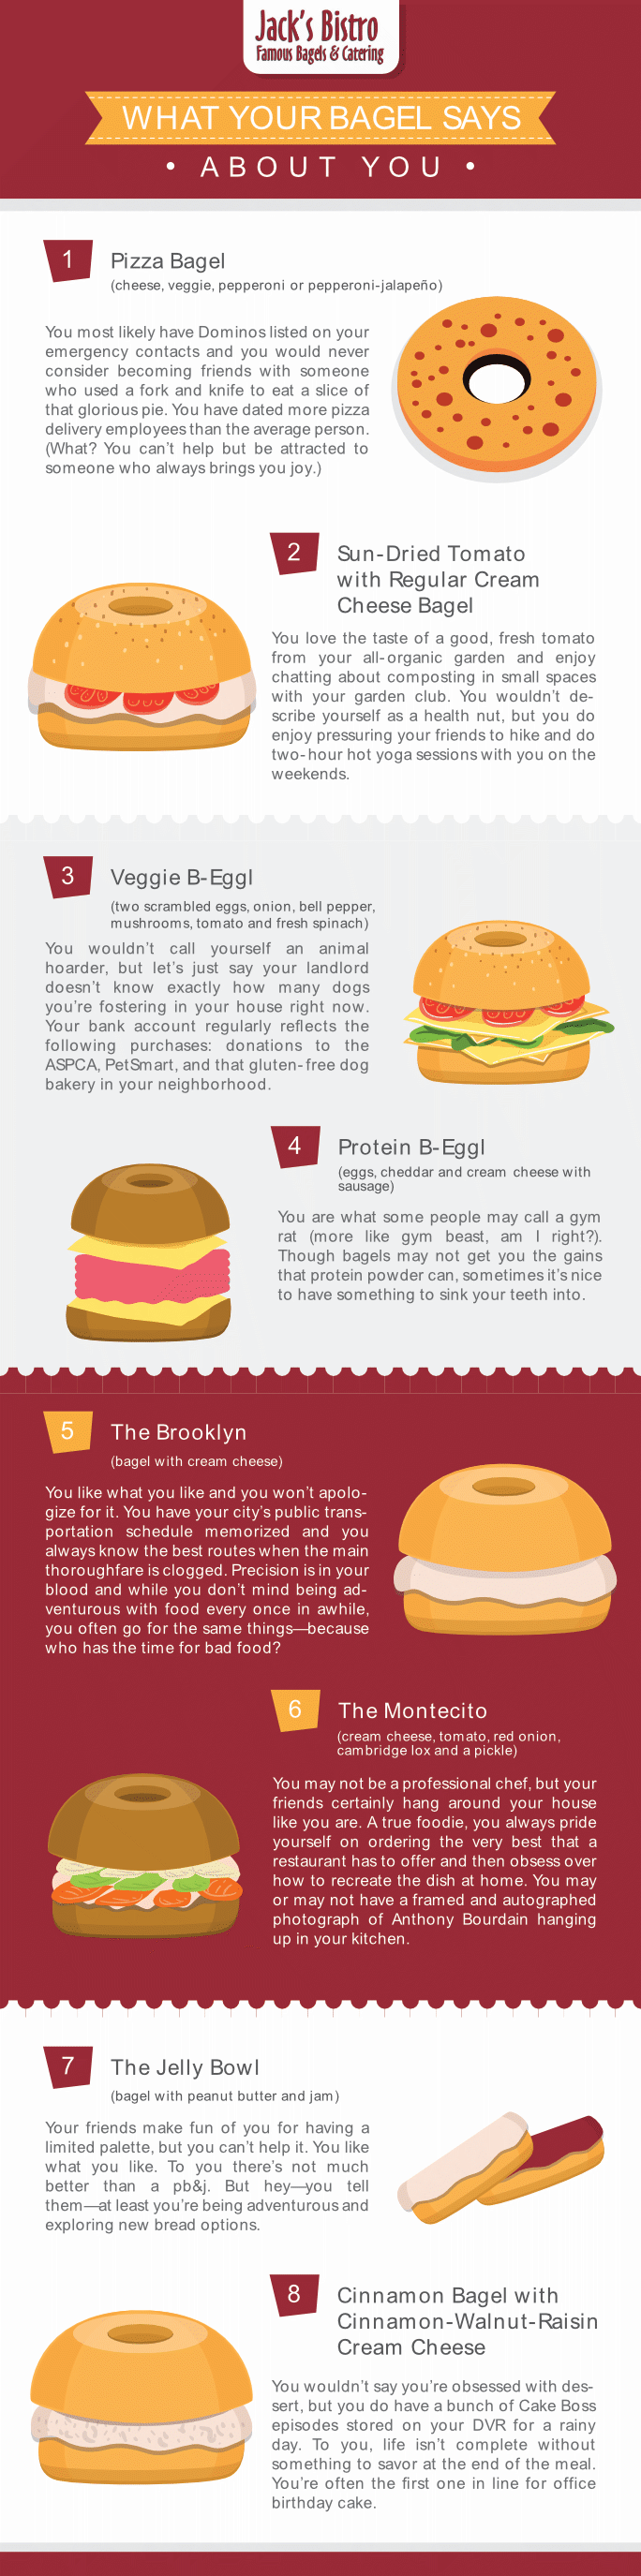 What Your Bagel Says About You [Infographic]